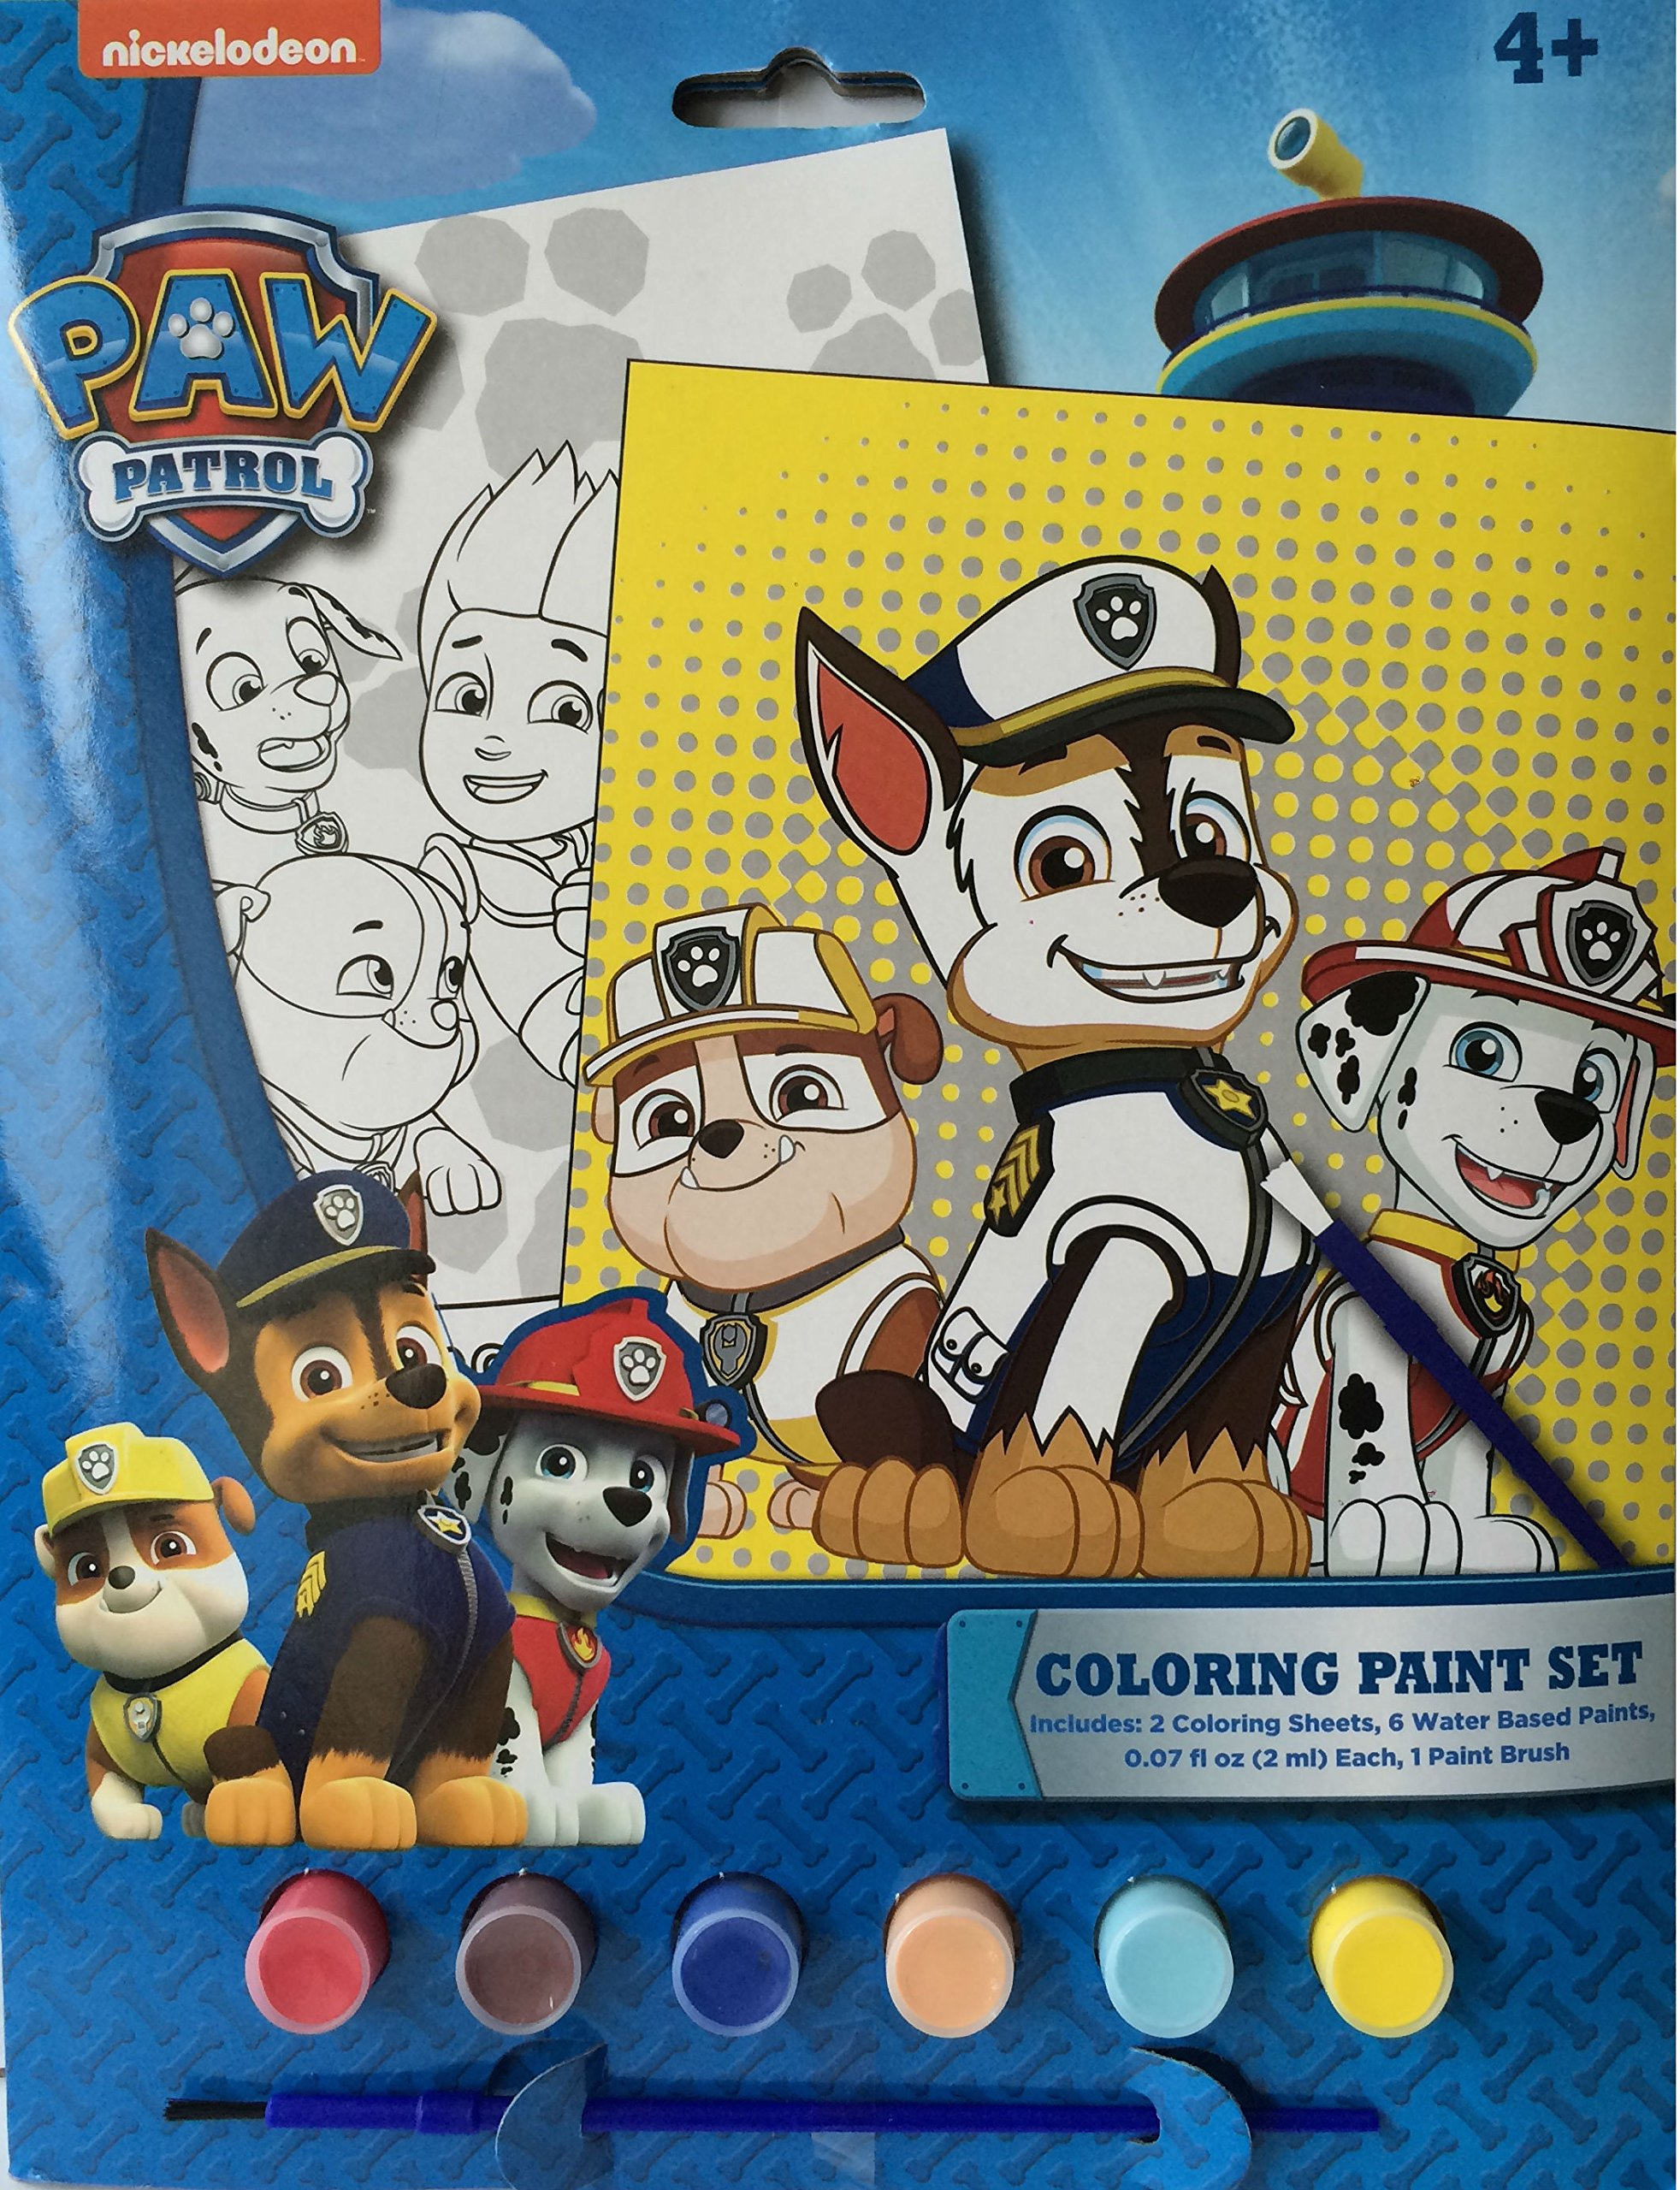 Paw Patrol Coloring Paint Set includes: 2 coloring sheets, 6 water based paints, and 1 paint brush